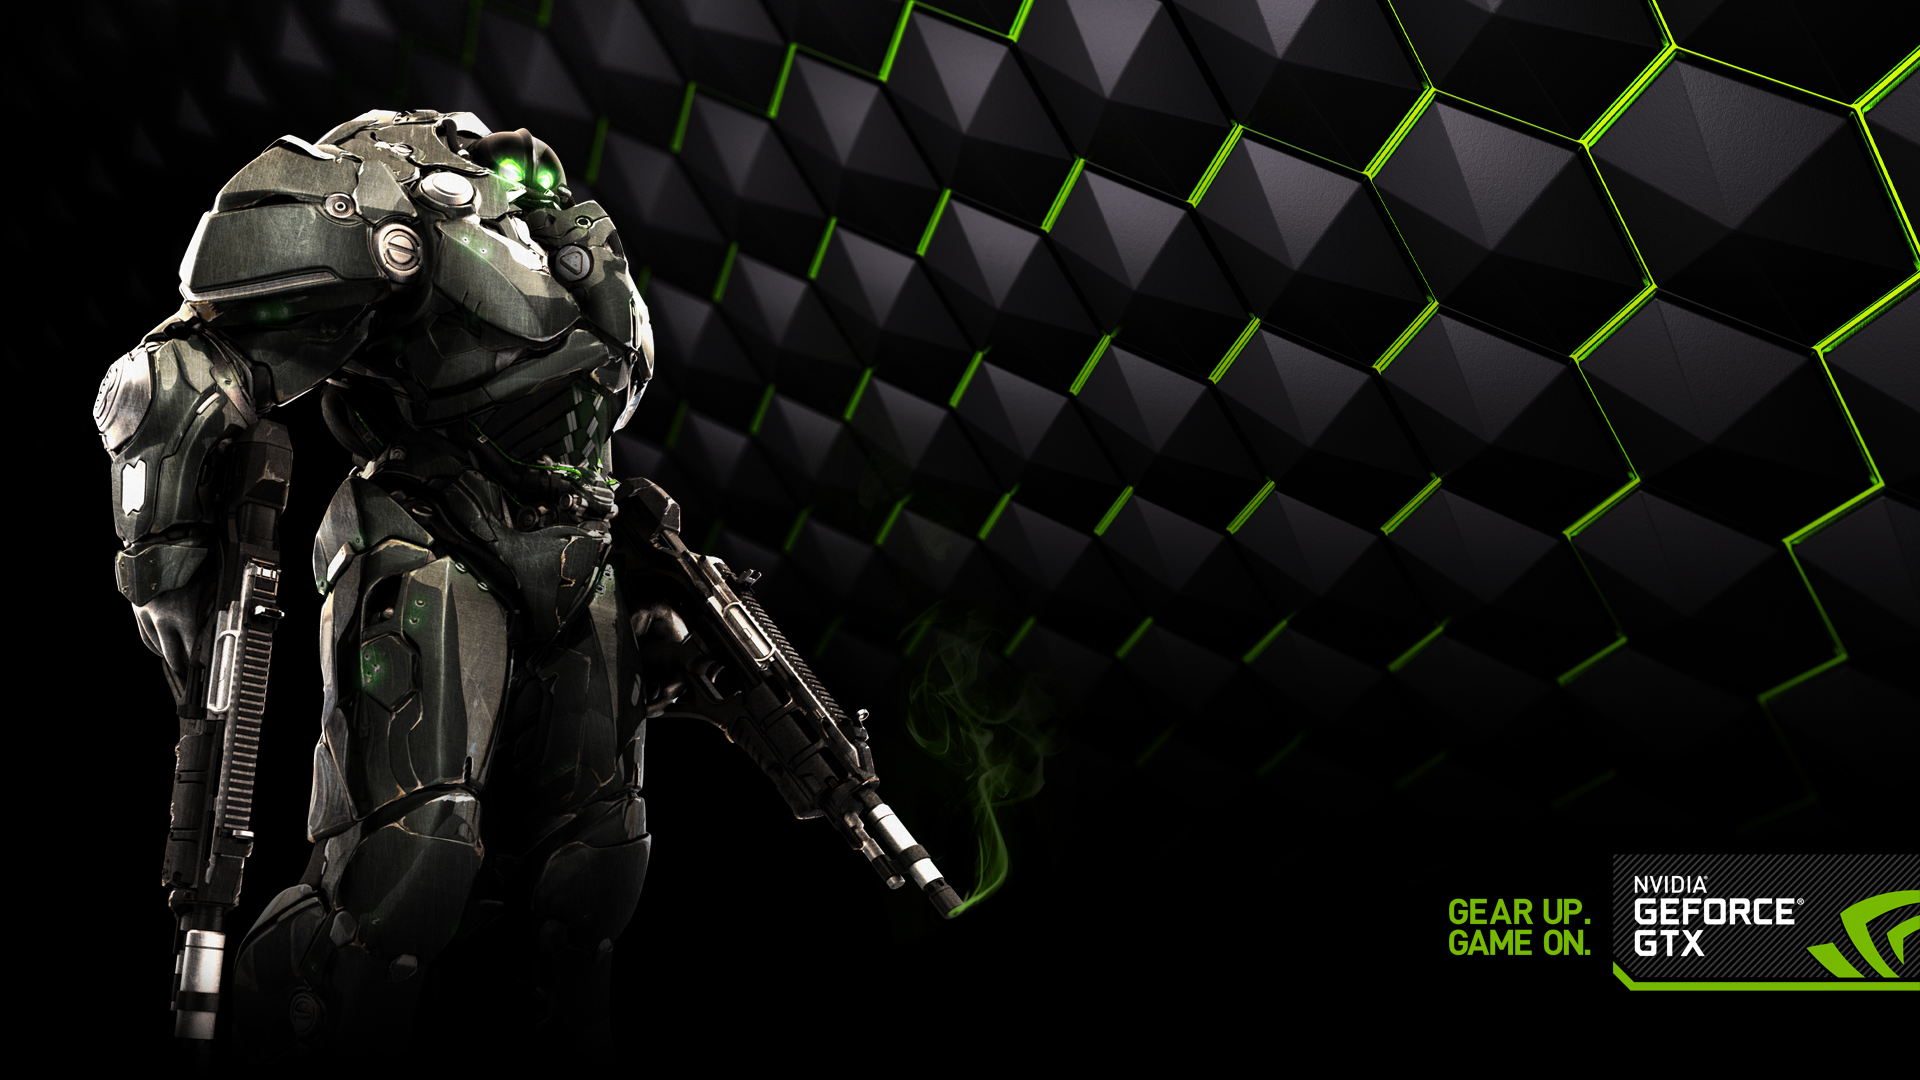 nvidia wallpaper hd free download